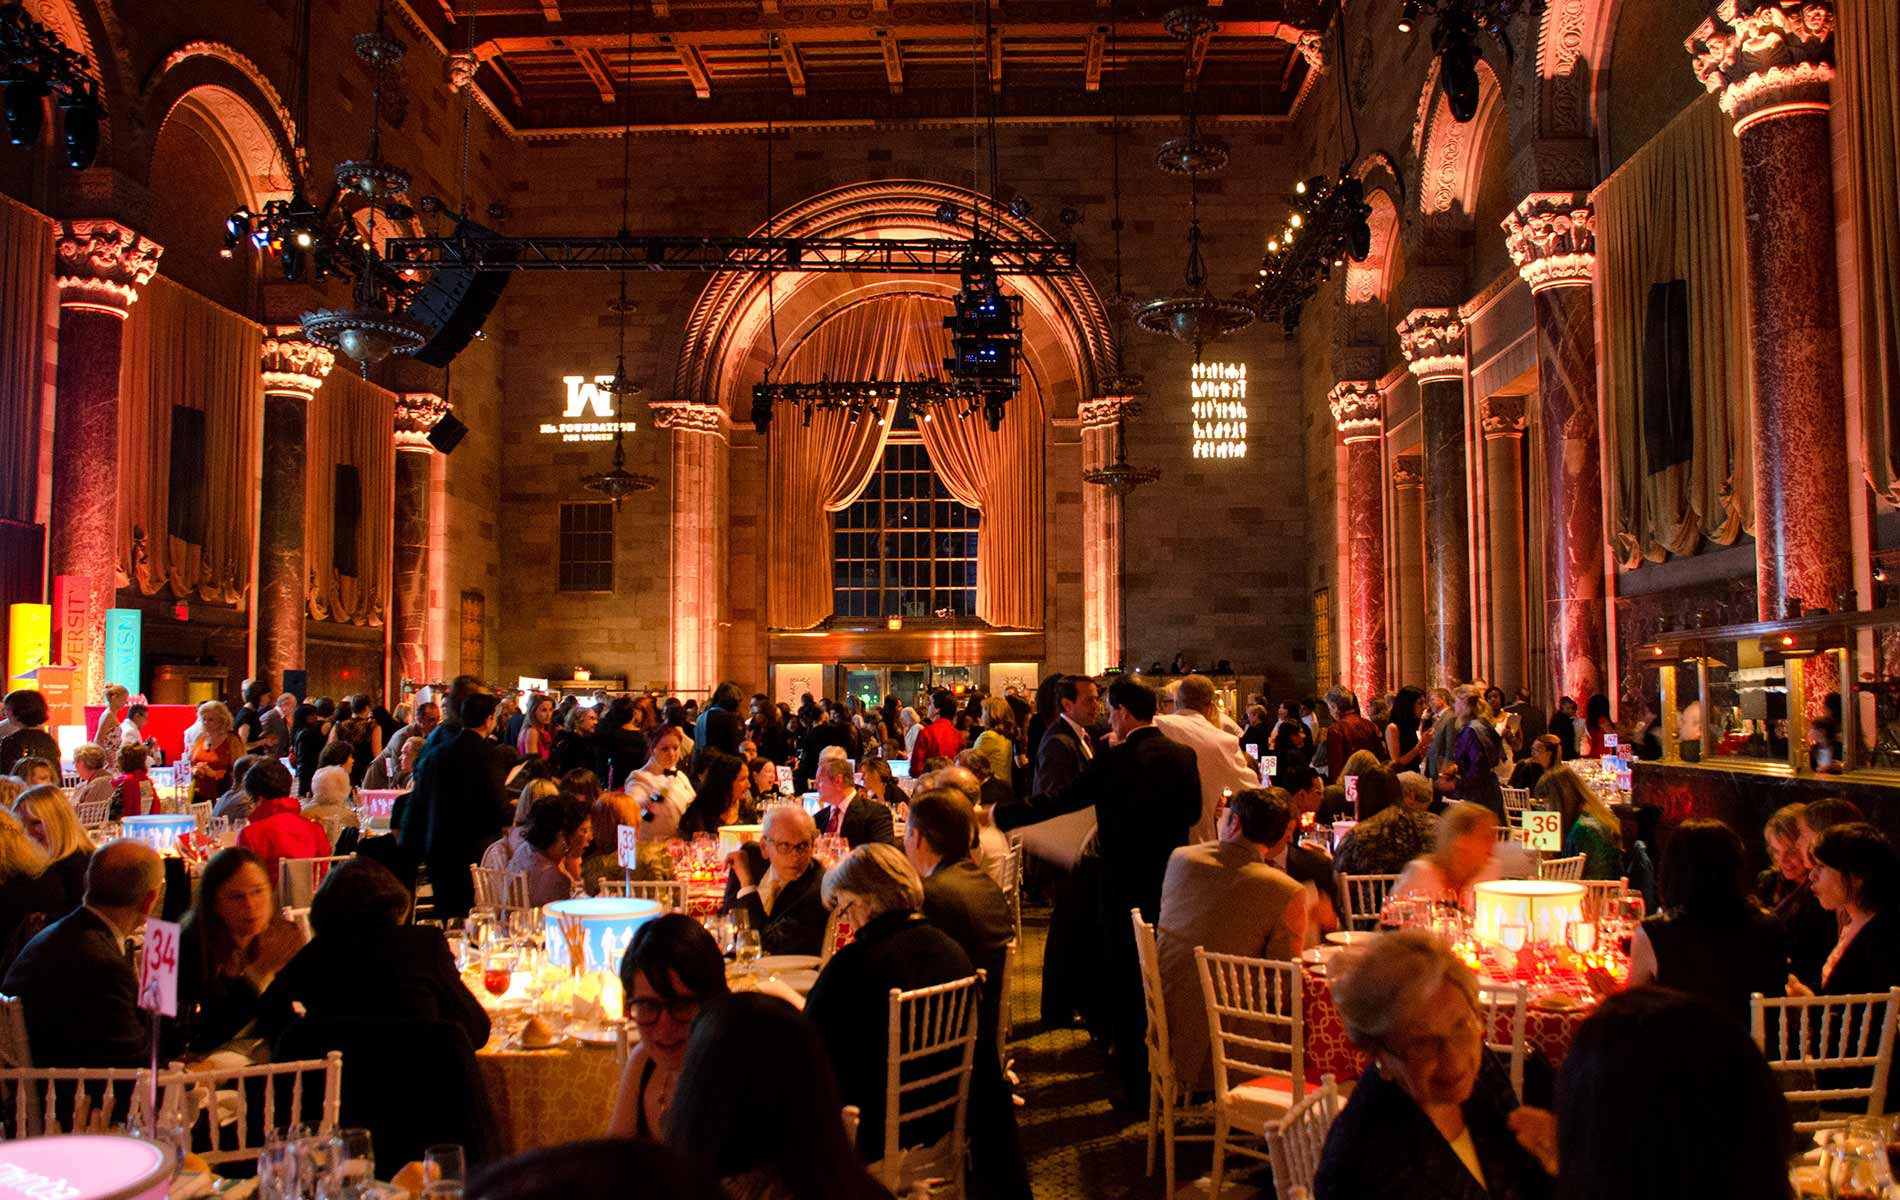 Twenty-Fifth Annual Gloria Awards banquet in the spectacular grand hall of Cipriani 42nd Street